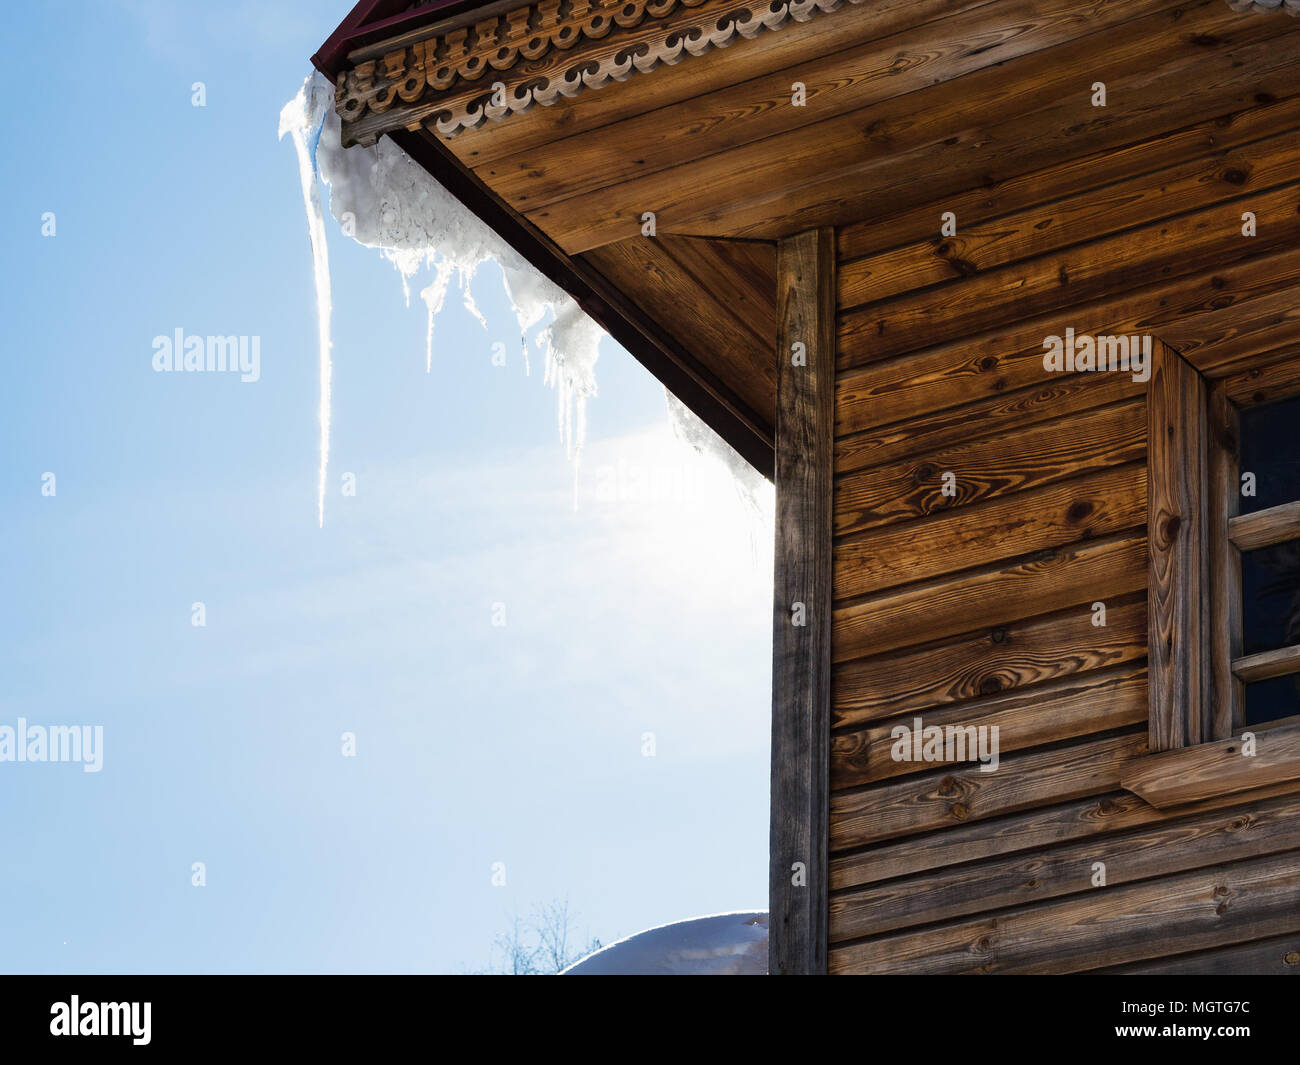 icicle illuminated by sun on roof of old log house in Suzdal town in